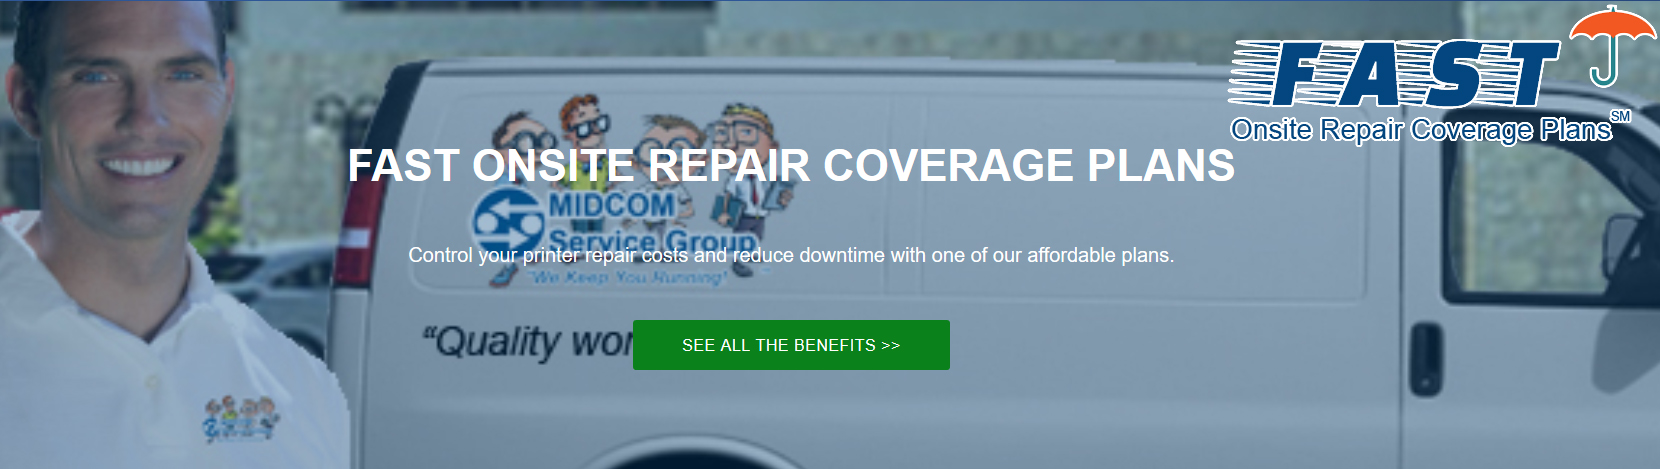 fast onsite repair coverage plan ad banner